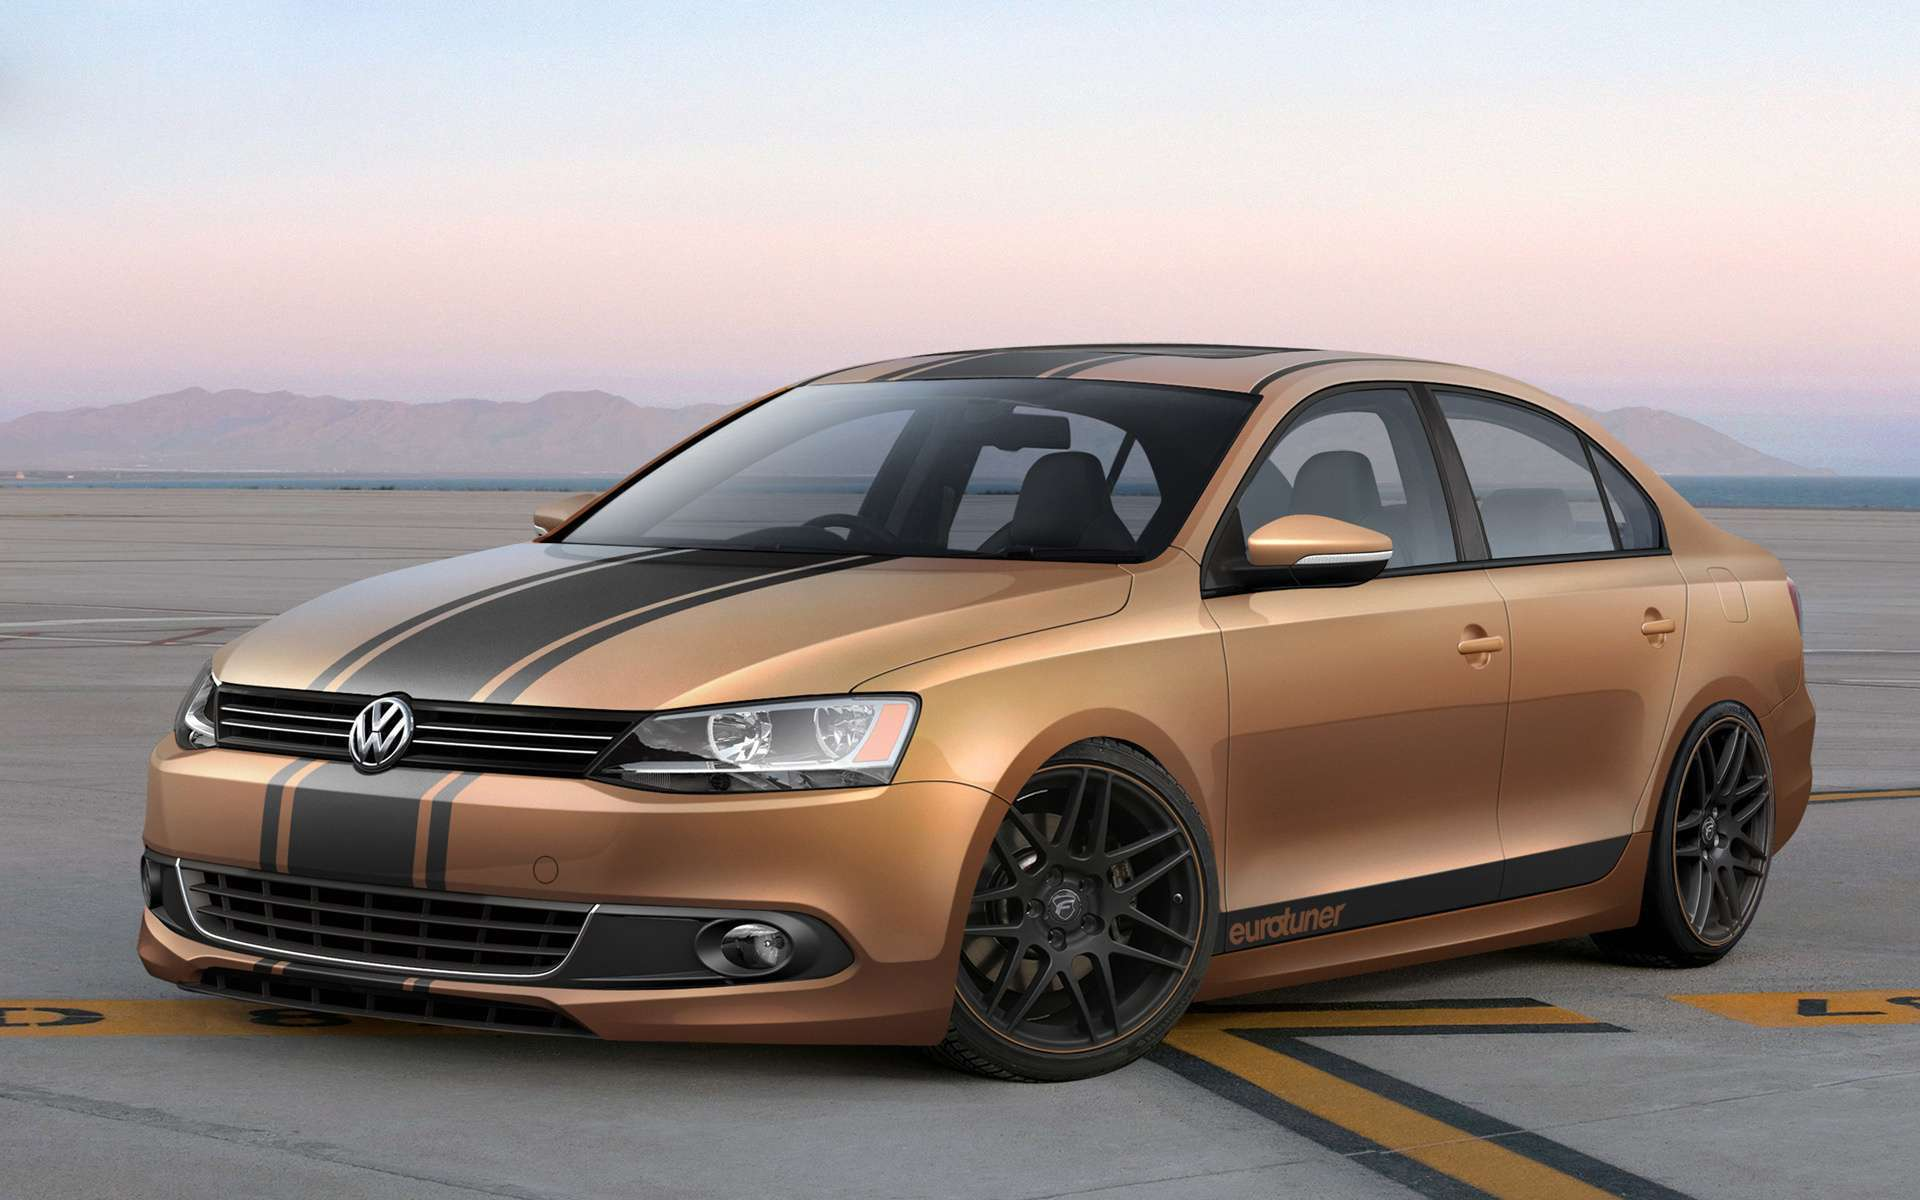 Volkswagen Jetta Hd Wallpapers Hd Car Wallpapers 1920x1200